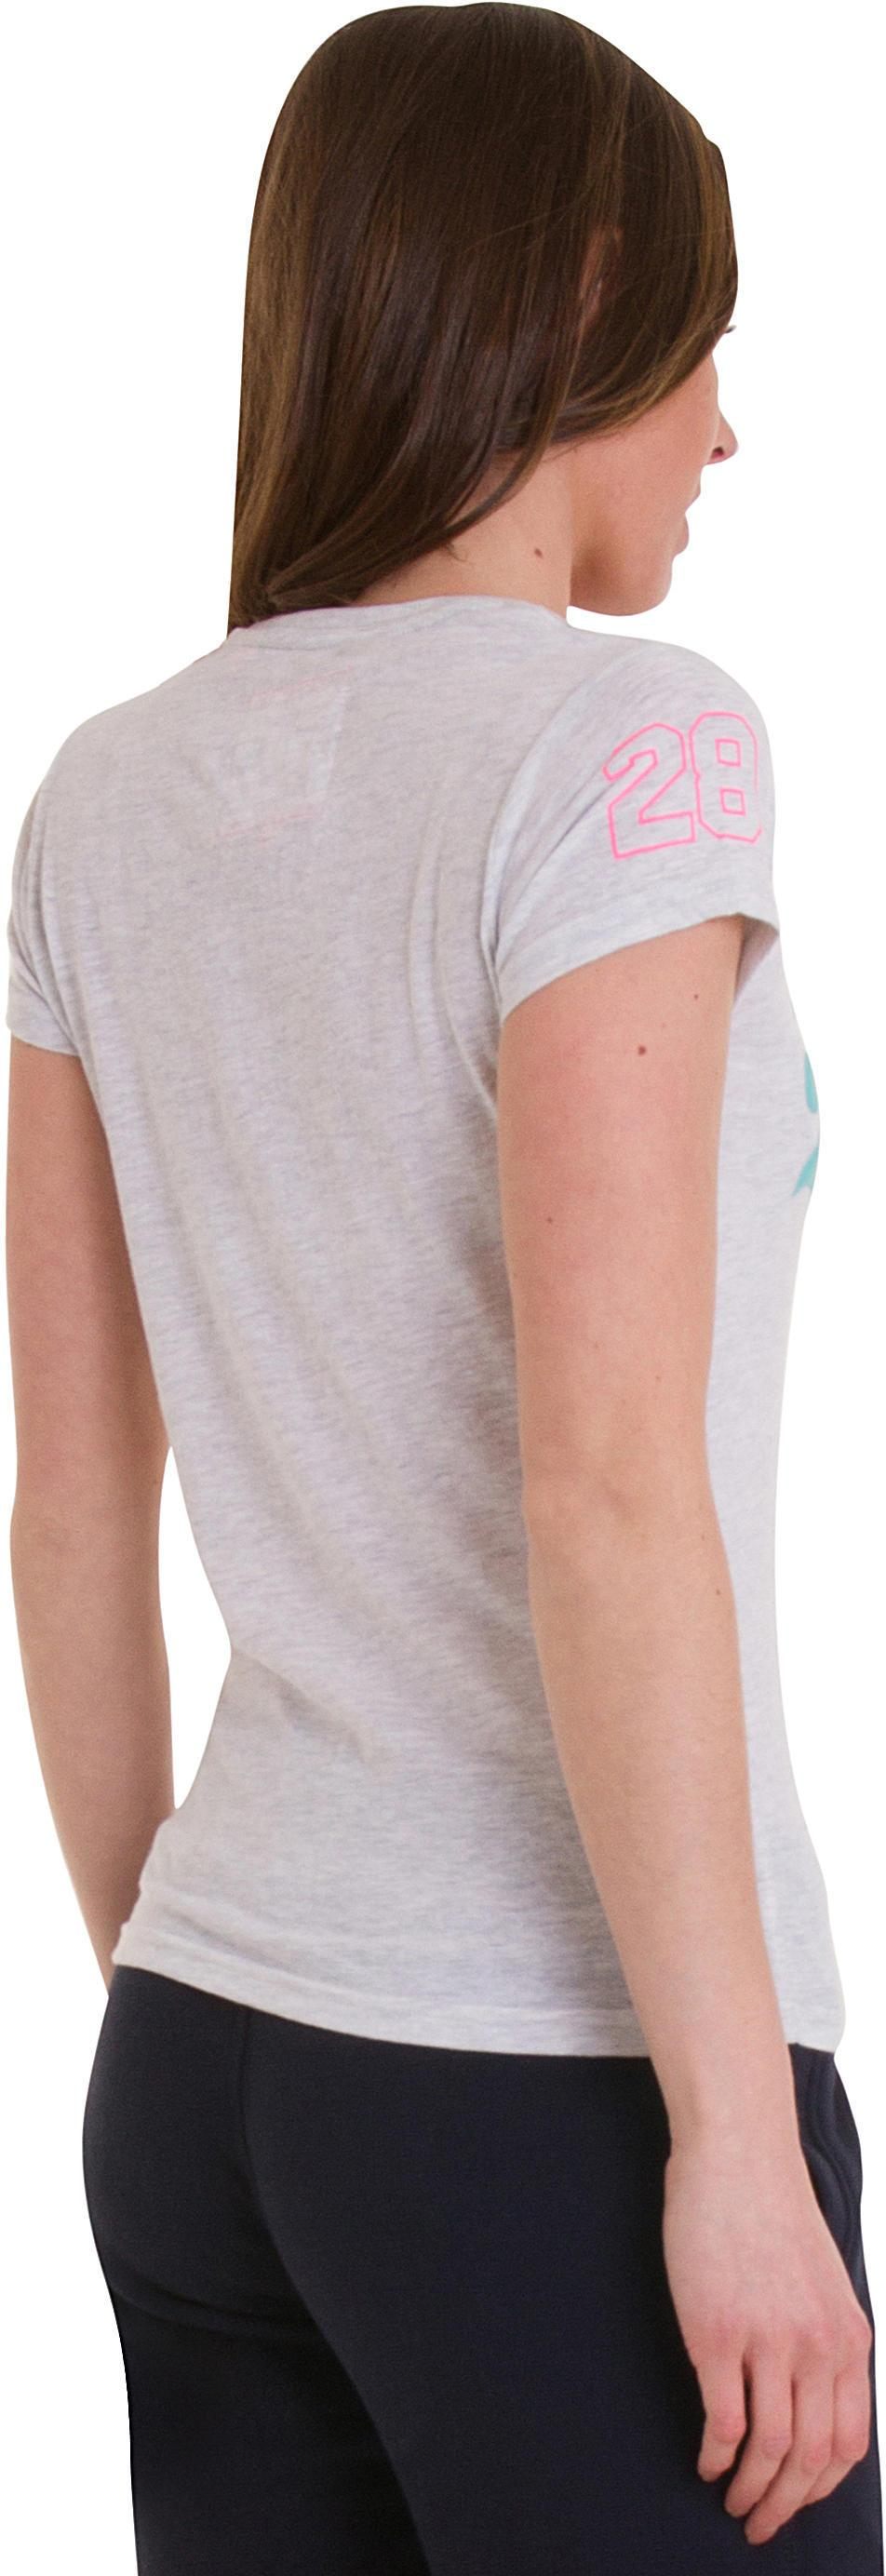 Superdry-T-Shirt-Women-039-s-Tops-Assorted-Styles thumbnail 91